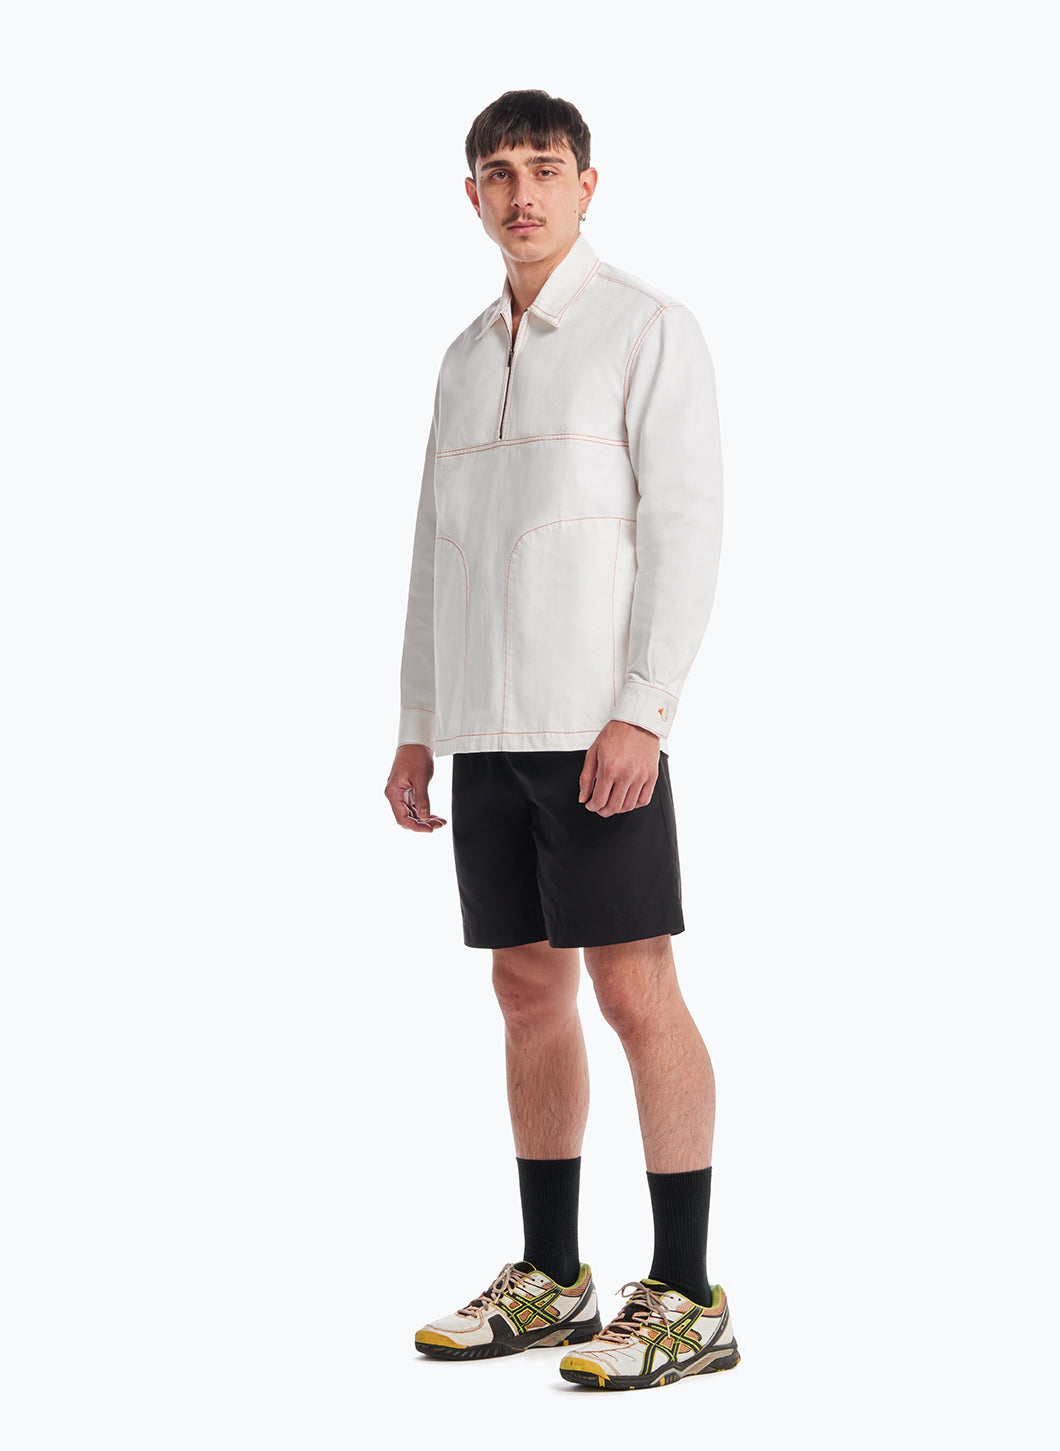 Poloshirt with Stitched Pockets in White Denim